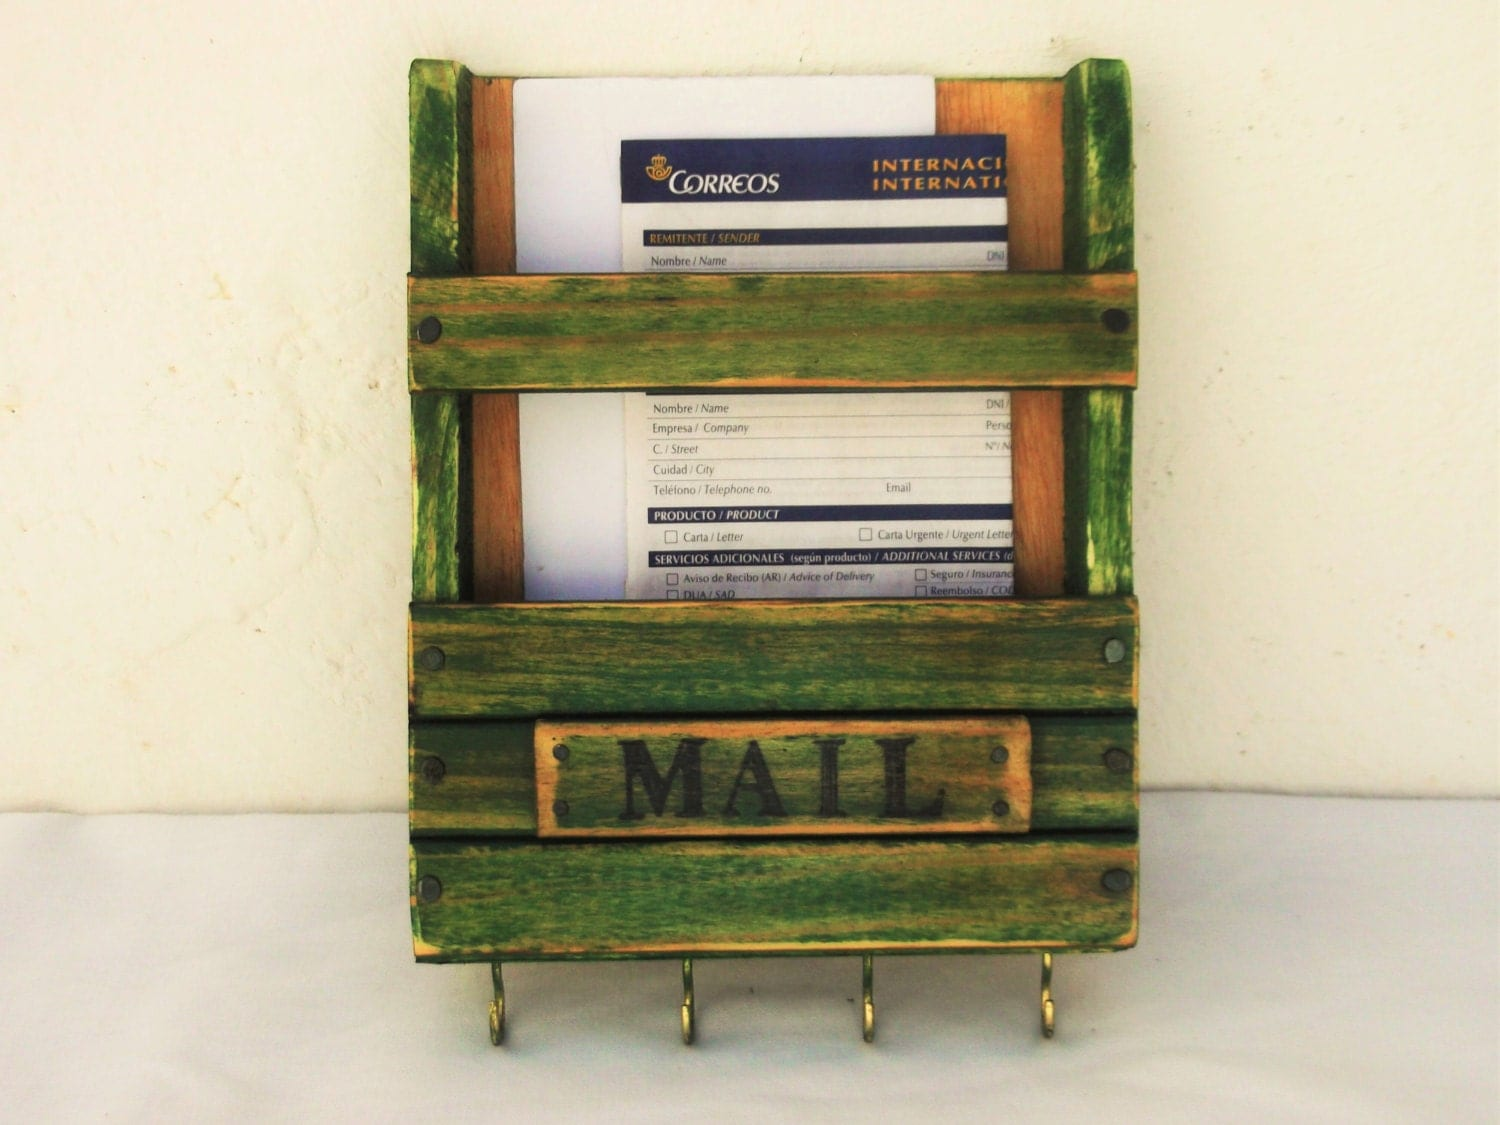 Mail holder and key rack rustic green wooden by regalosrusticos - Mail holder and key rack ...